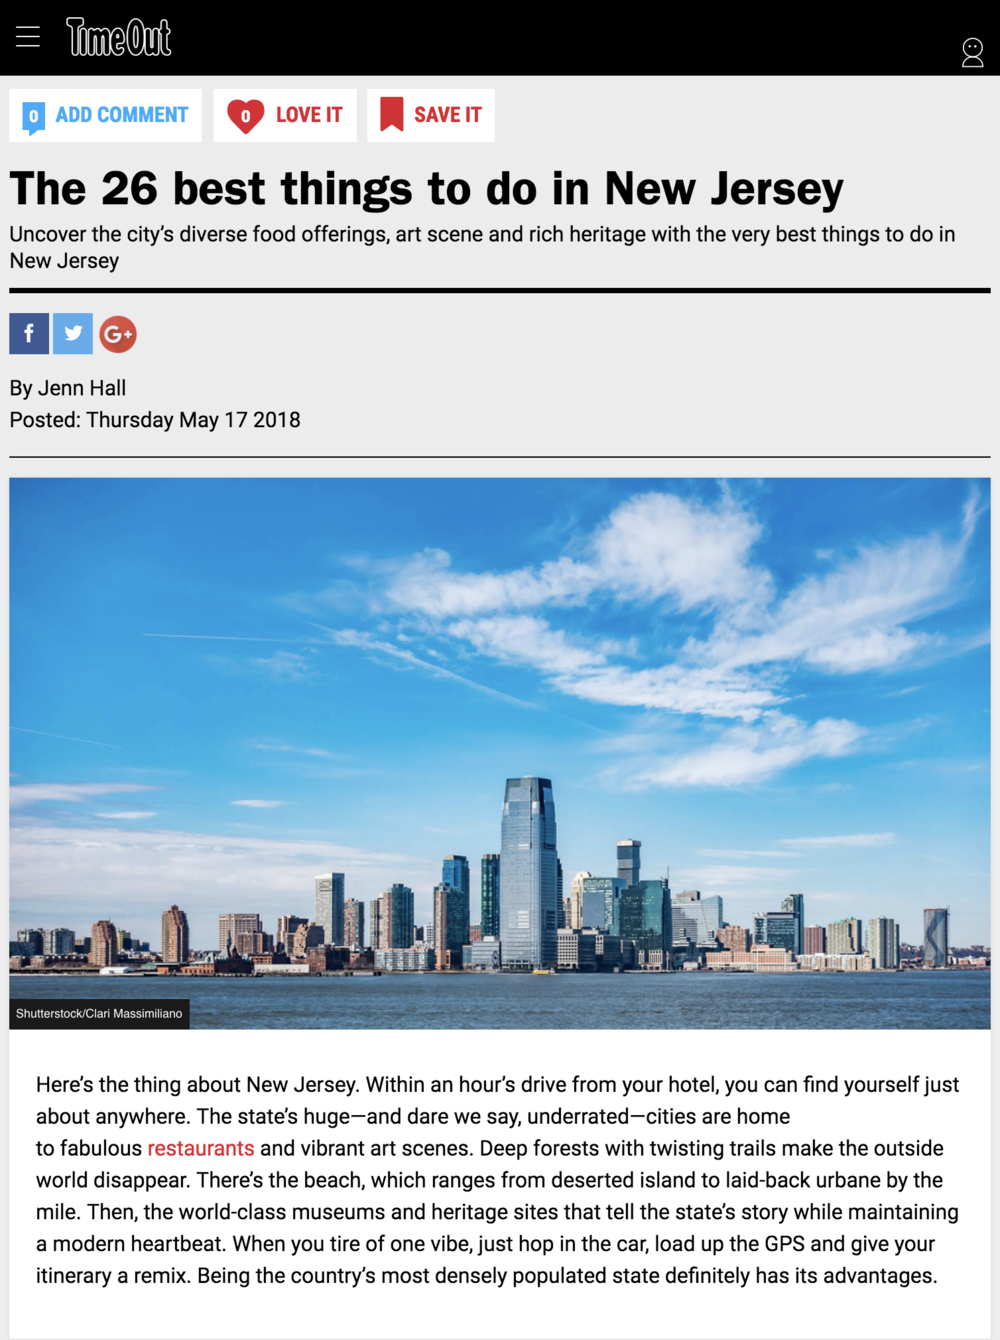 The 26 best things to do in New Jersey